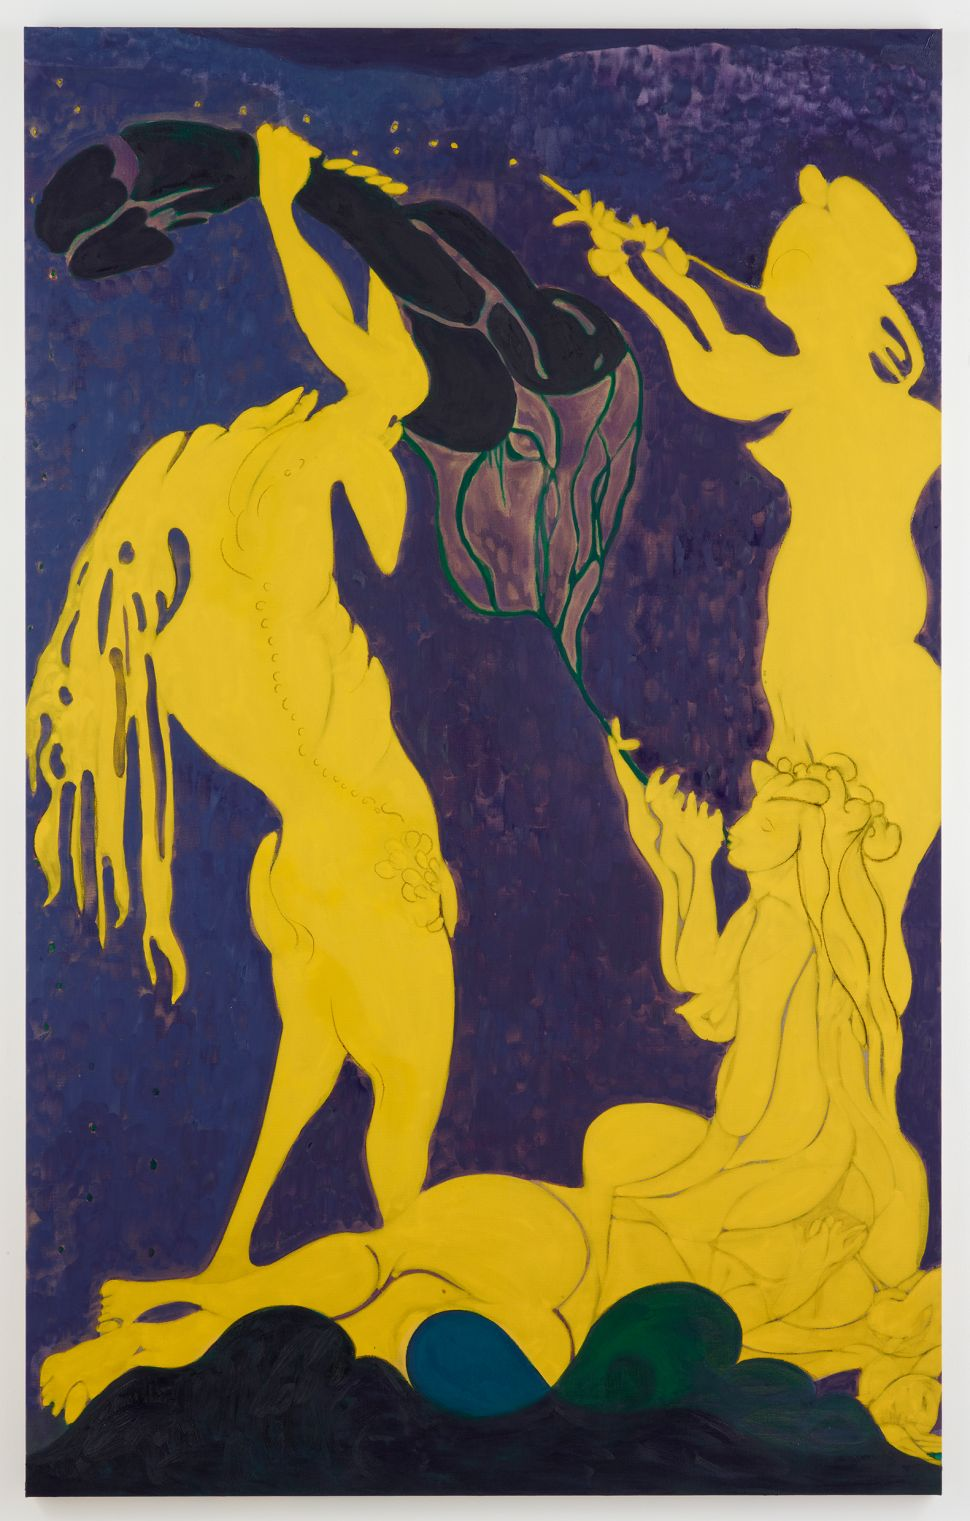 The New Museum Extends 'Chris Ofili: Night and Day' Through February 1